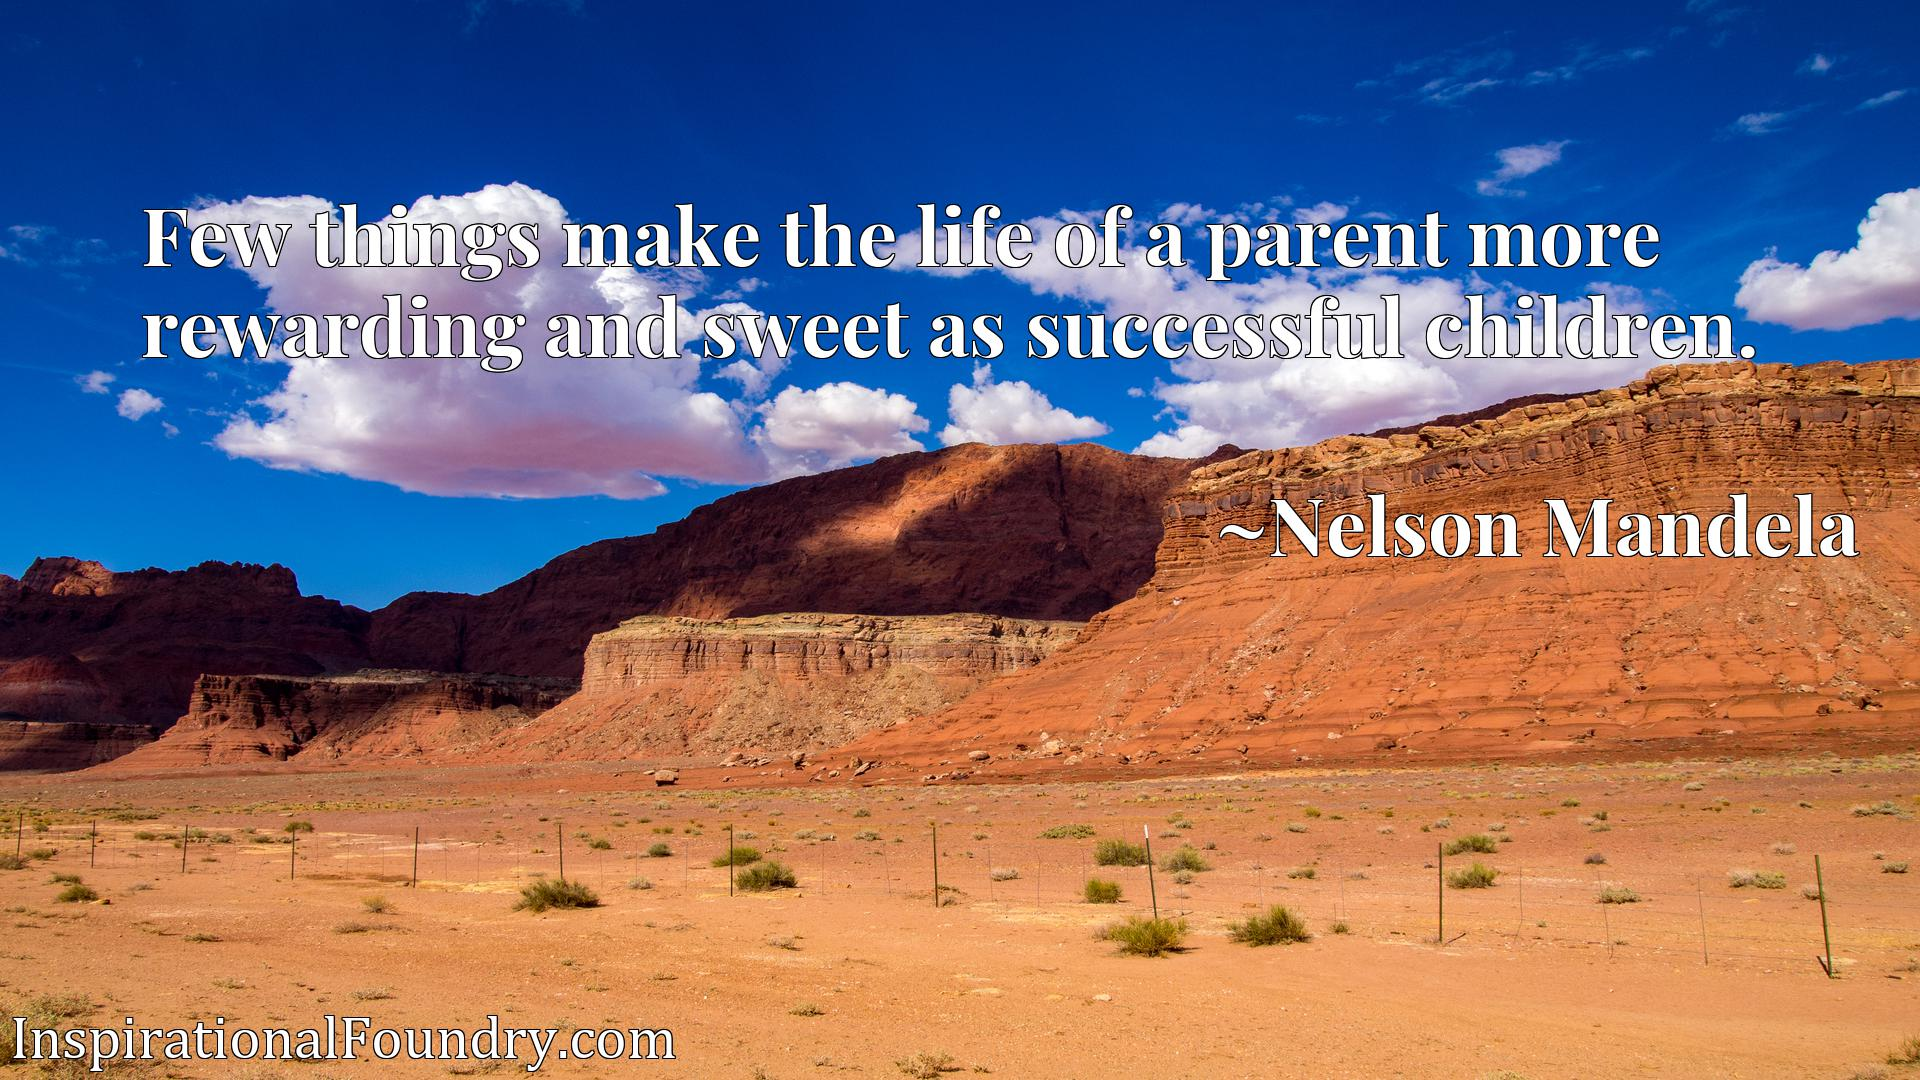 Quote Picture :Few things make the life of a parent more rewarding and sweet as successful children.